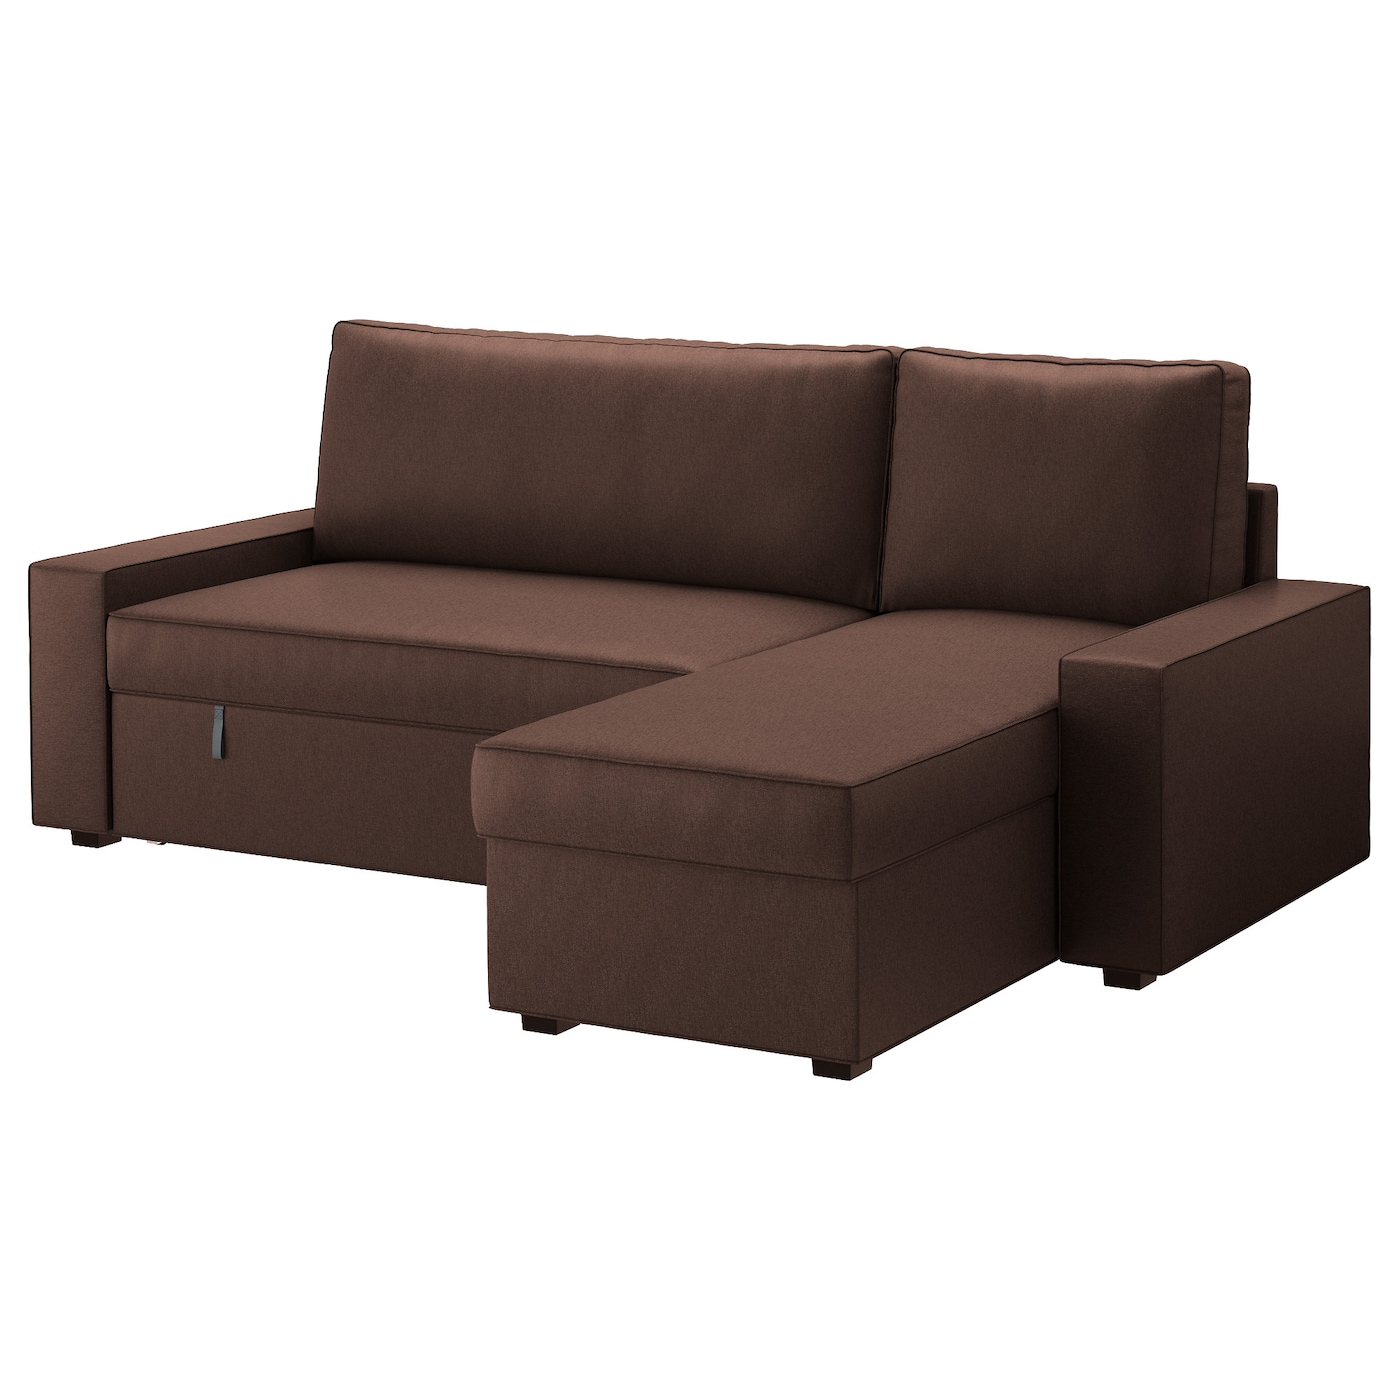 Vilasund sofa bed with chaise longue borred dark brown ikea for Chaise longue sofa